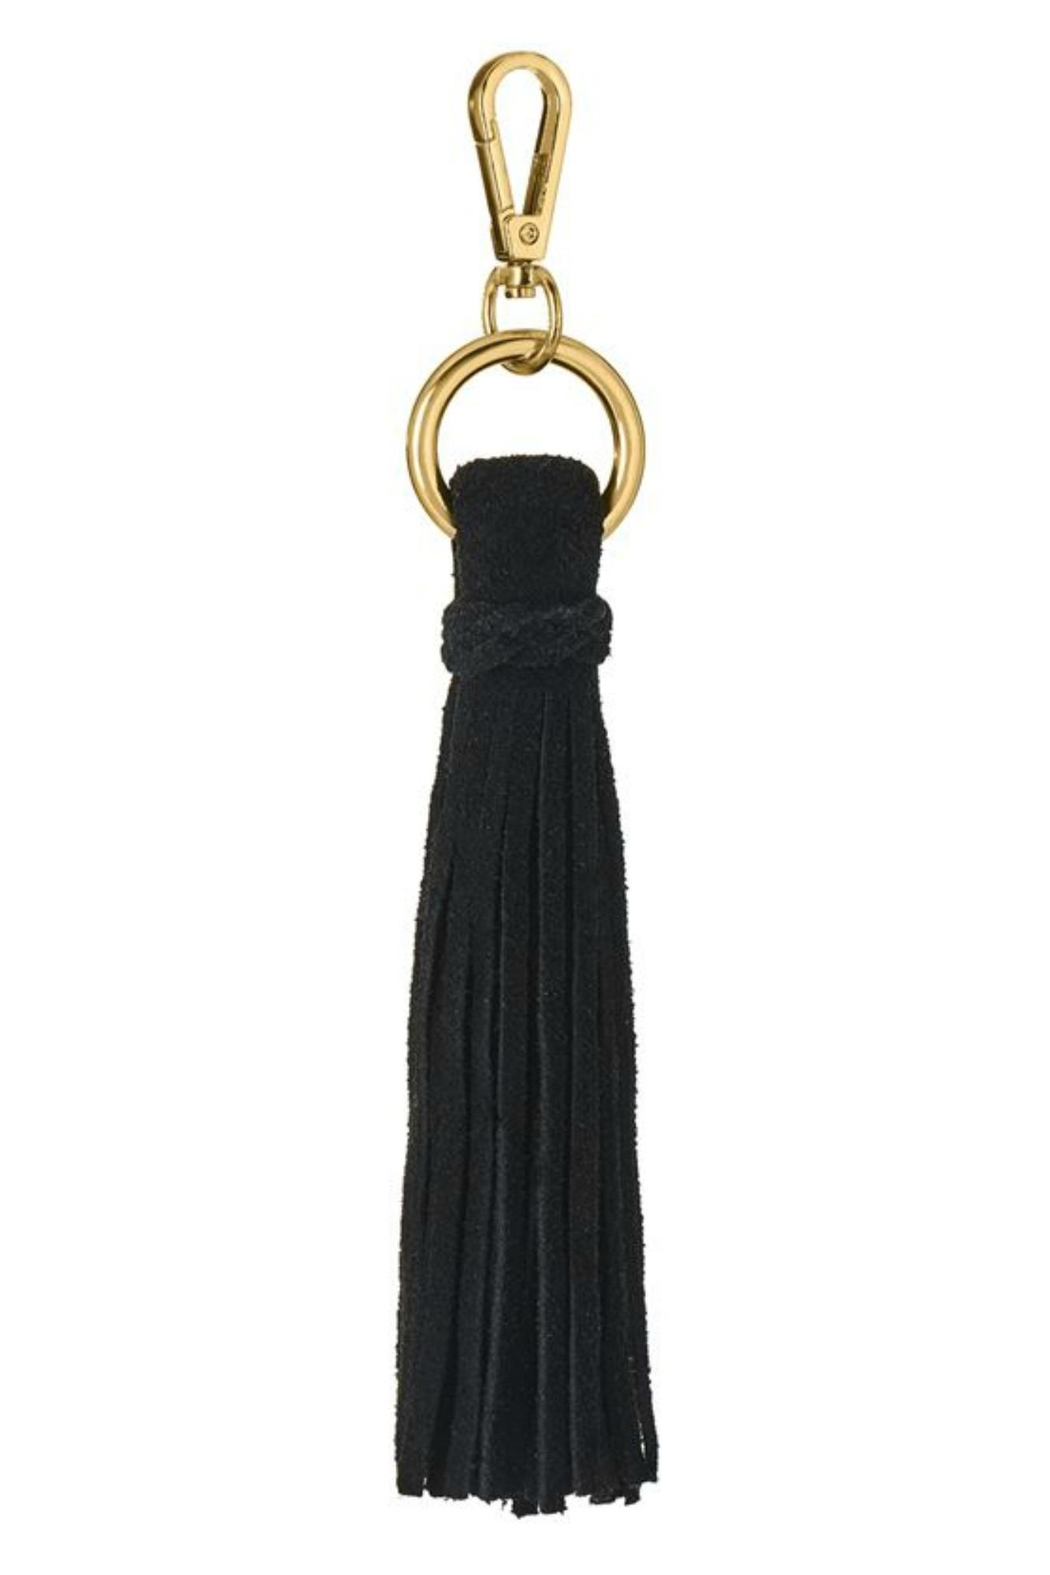 Coco + Carmen Keychain Tassels   Front Cropped Image